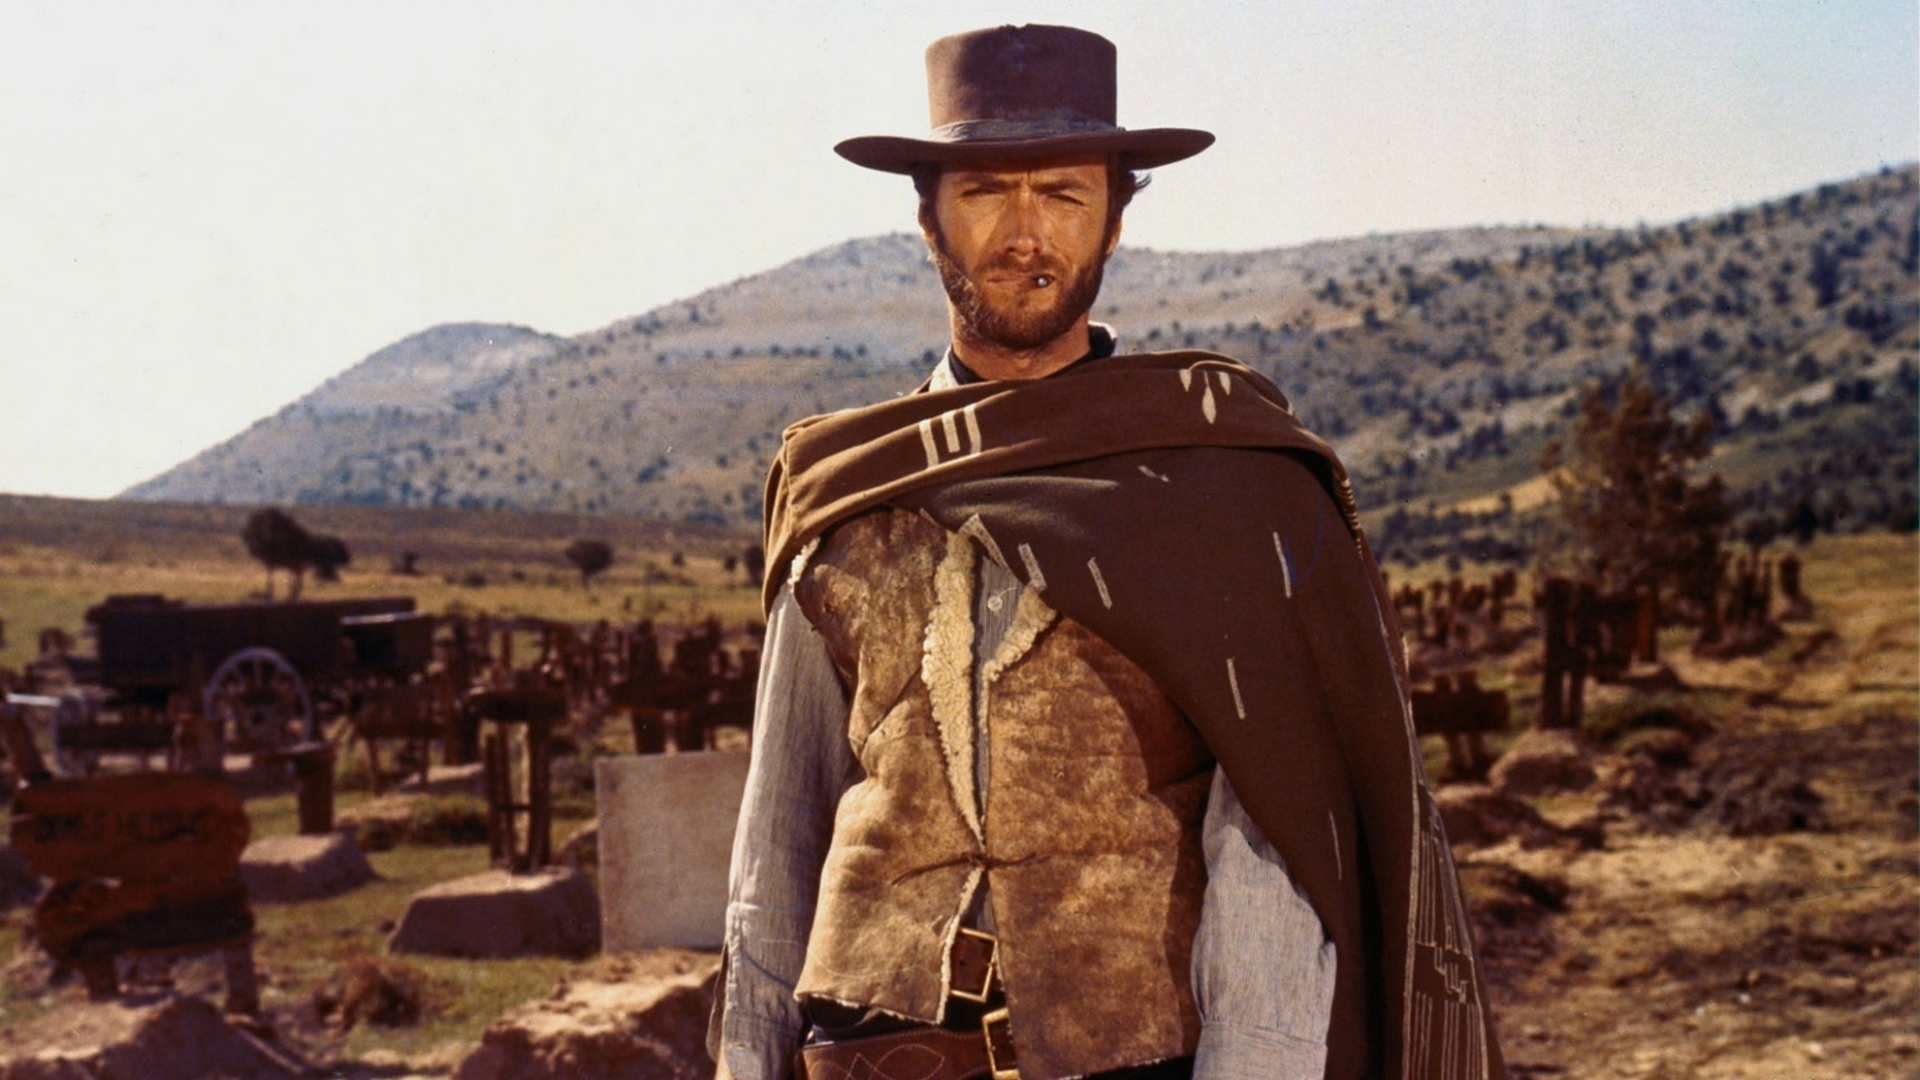 Clint Eastwood Cowboy HD Wallpaper, Background Images